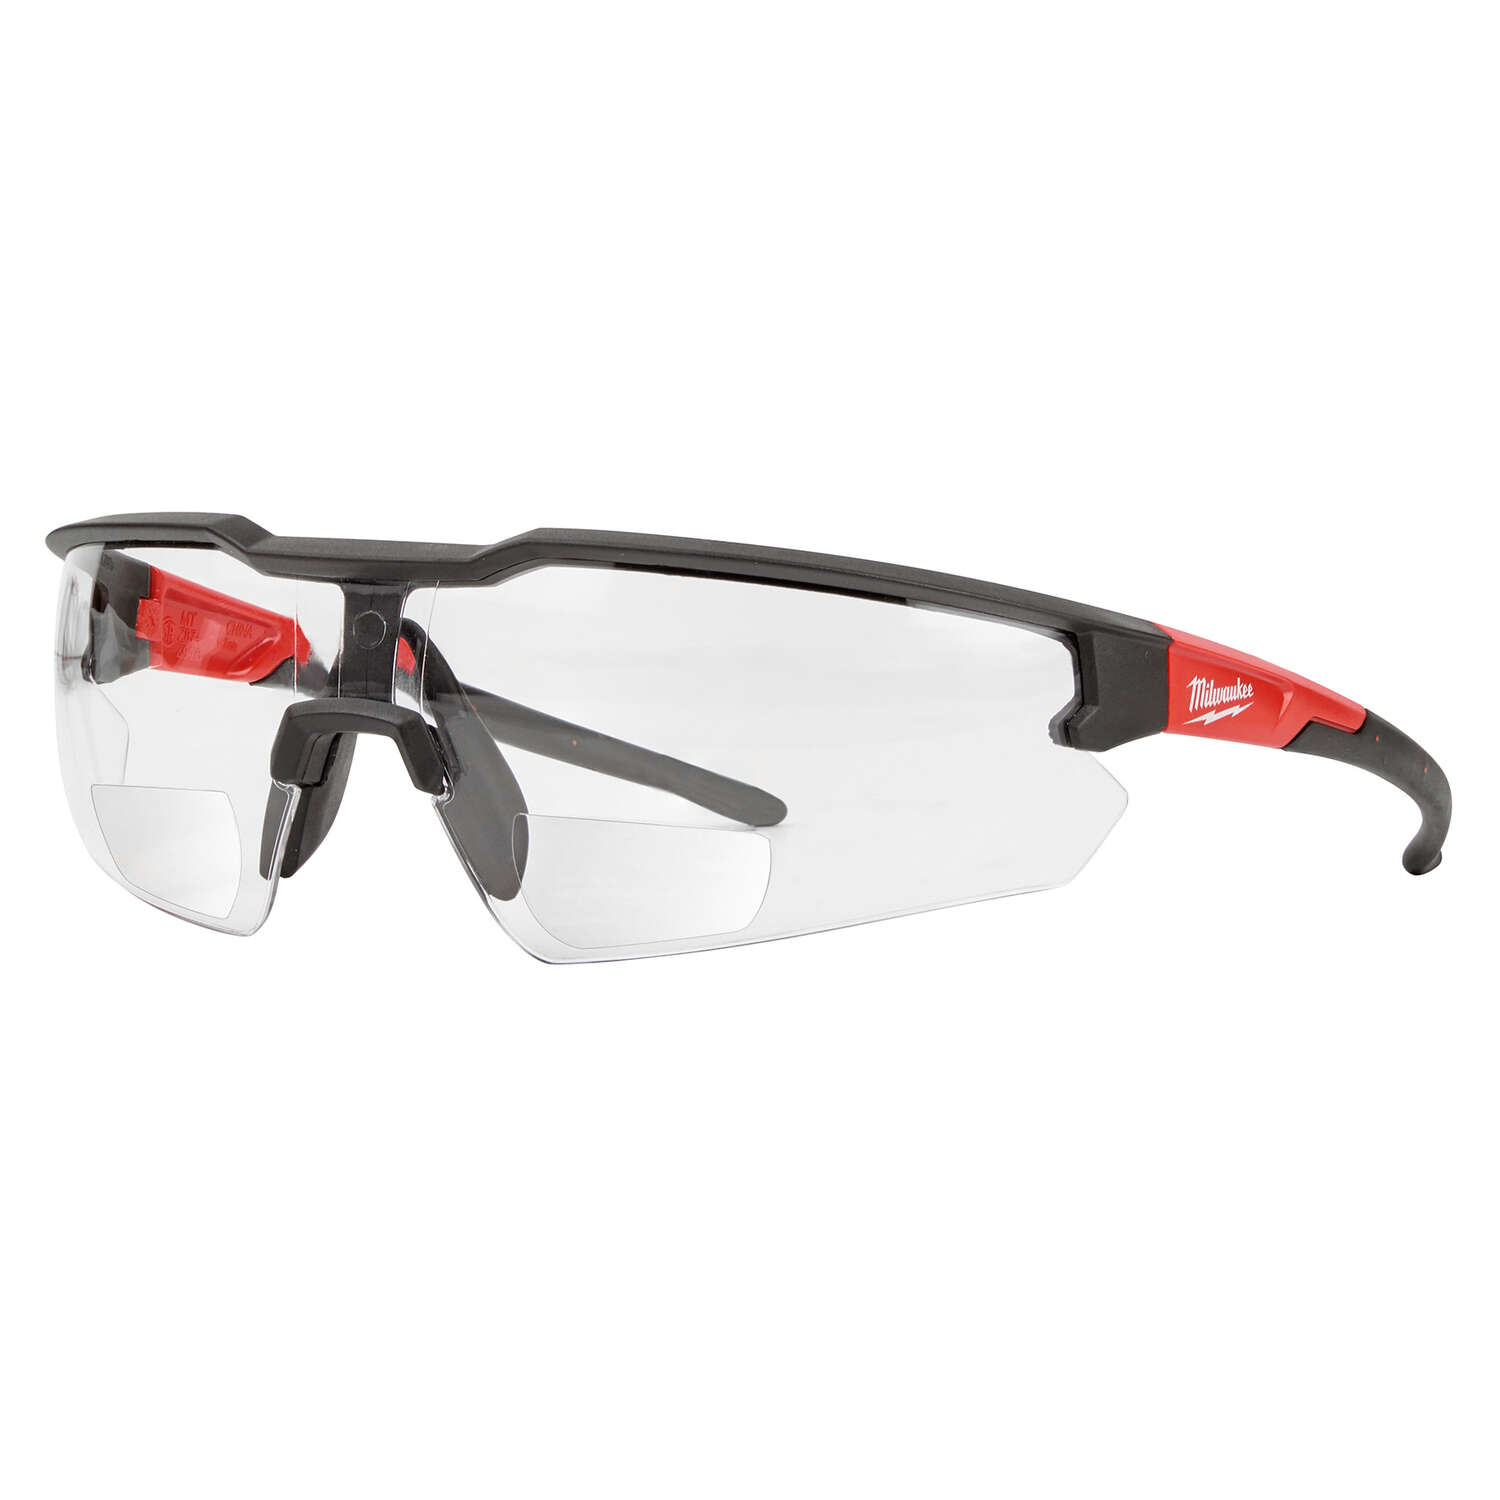 Milwaukee  Anti-Scratch  Magnified Safety Glasses  Clear Lens Black/Red Frame